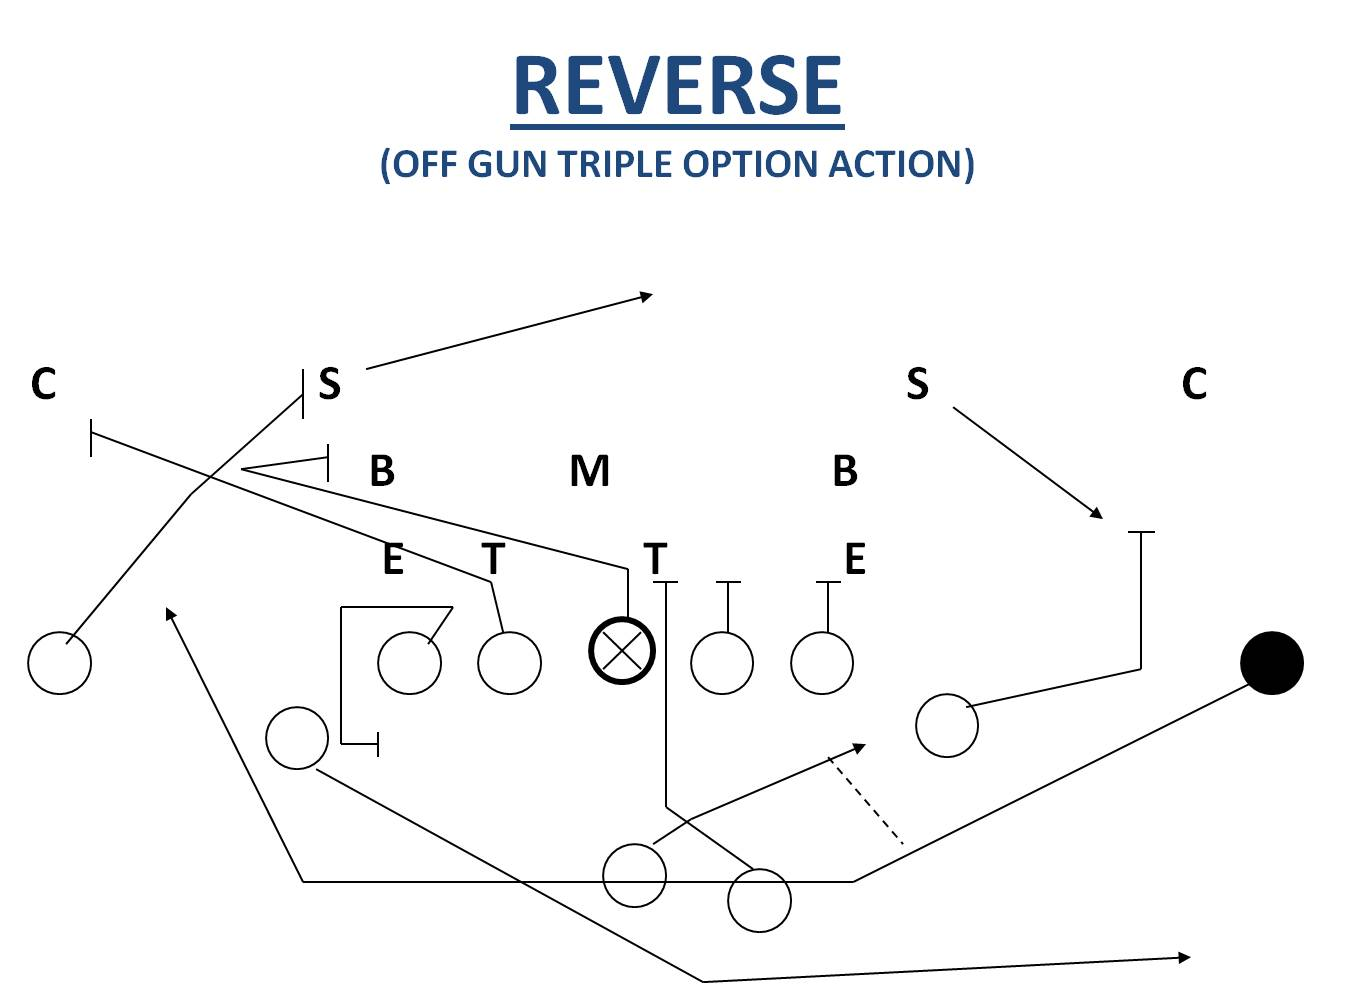 Taking Advantage of Defenses Using the Reverse Football